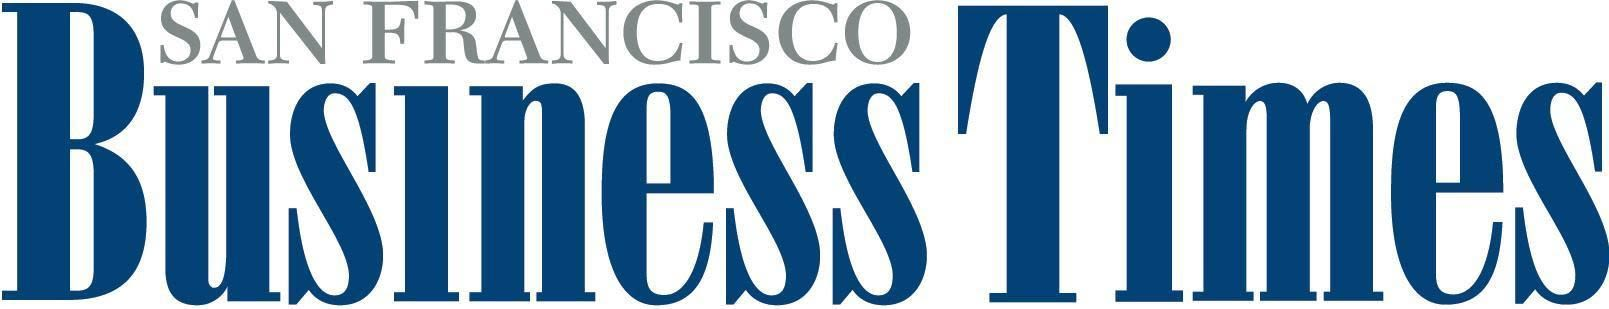 sfbusinesstimes